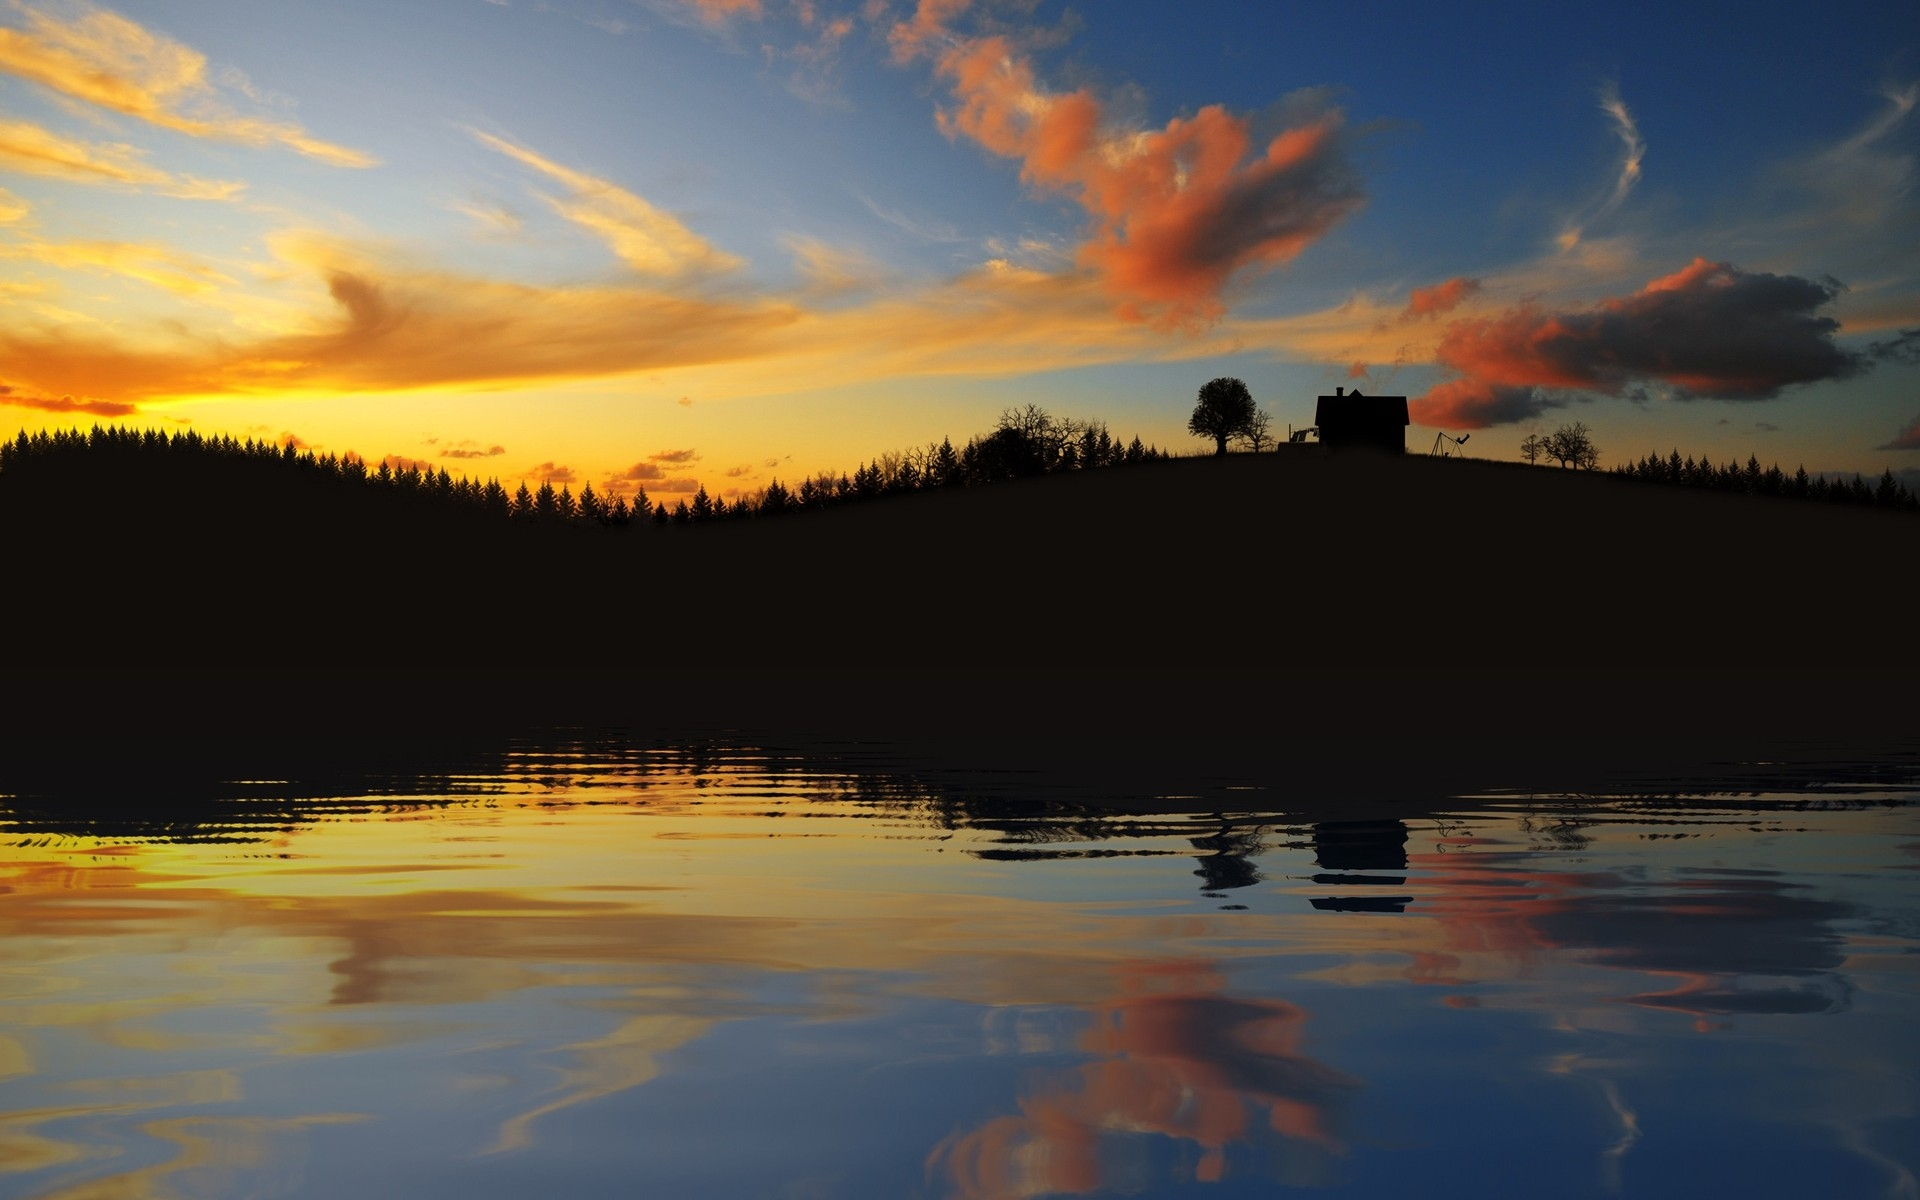 Wallpaper evening, outlines, lake, coast, trees, house, sky, clouds 651